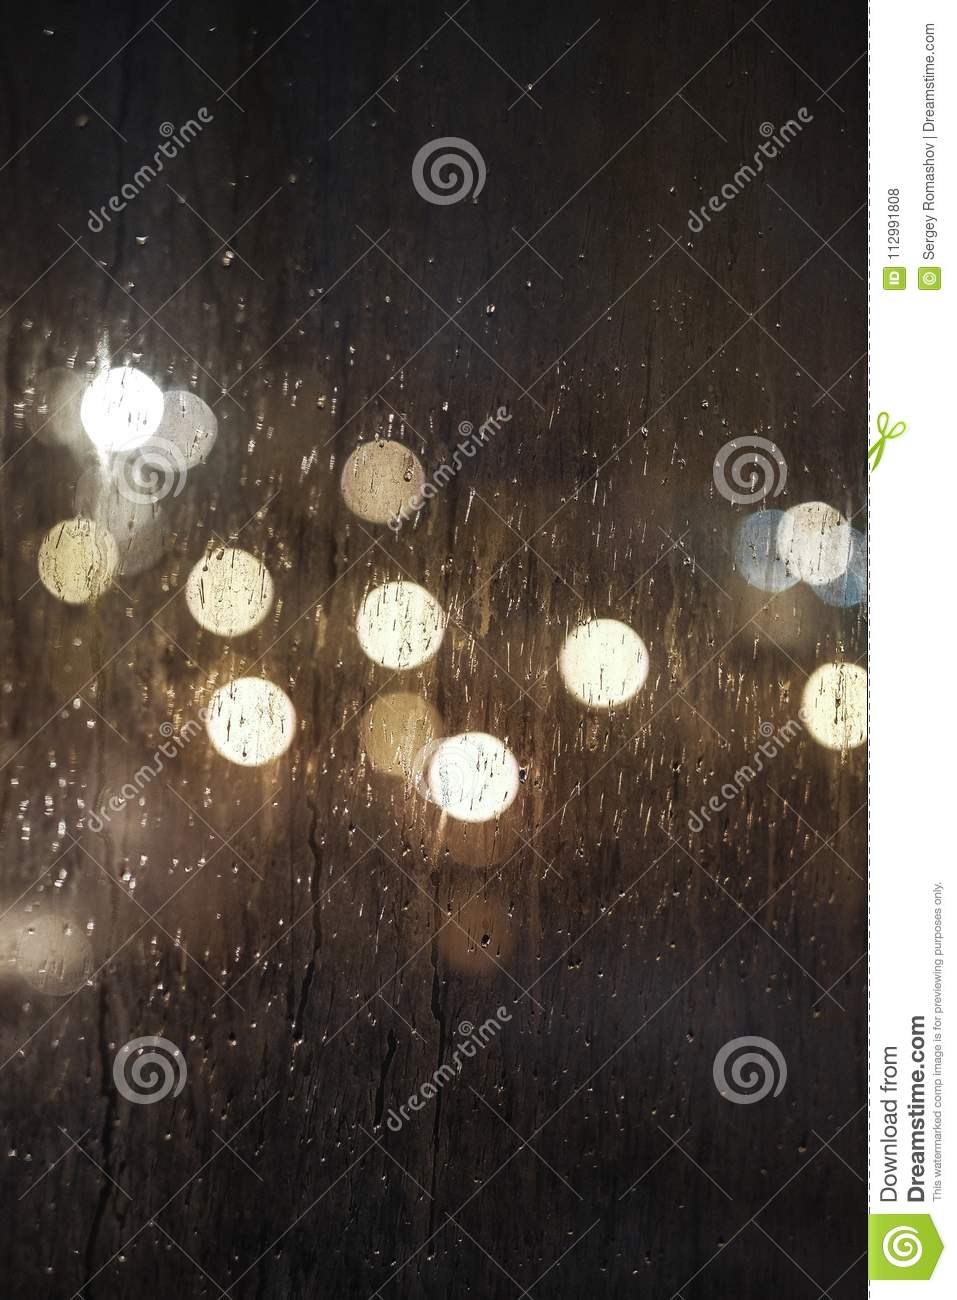 The structure of the dirty glass background